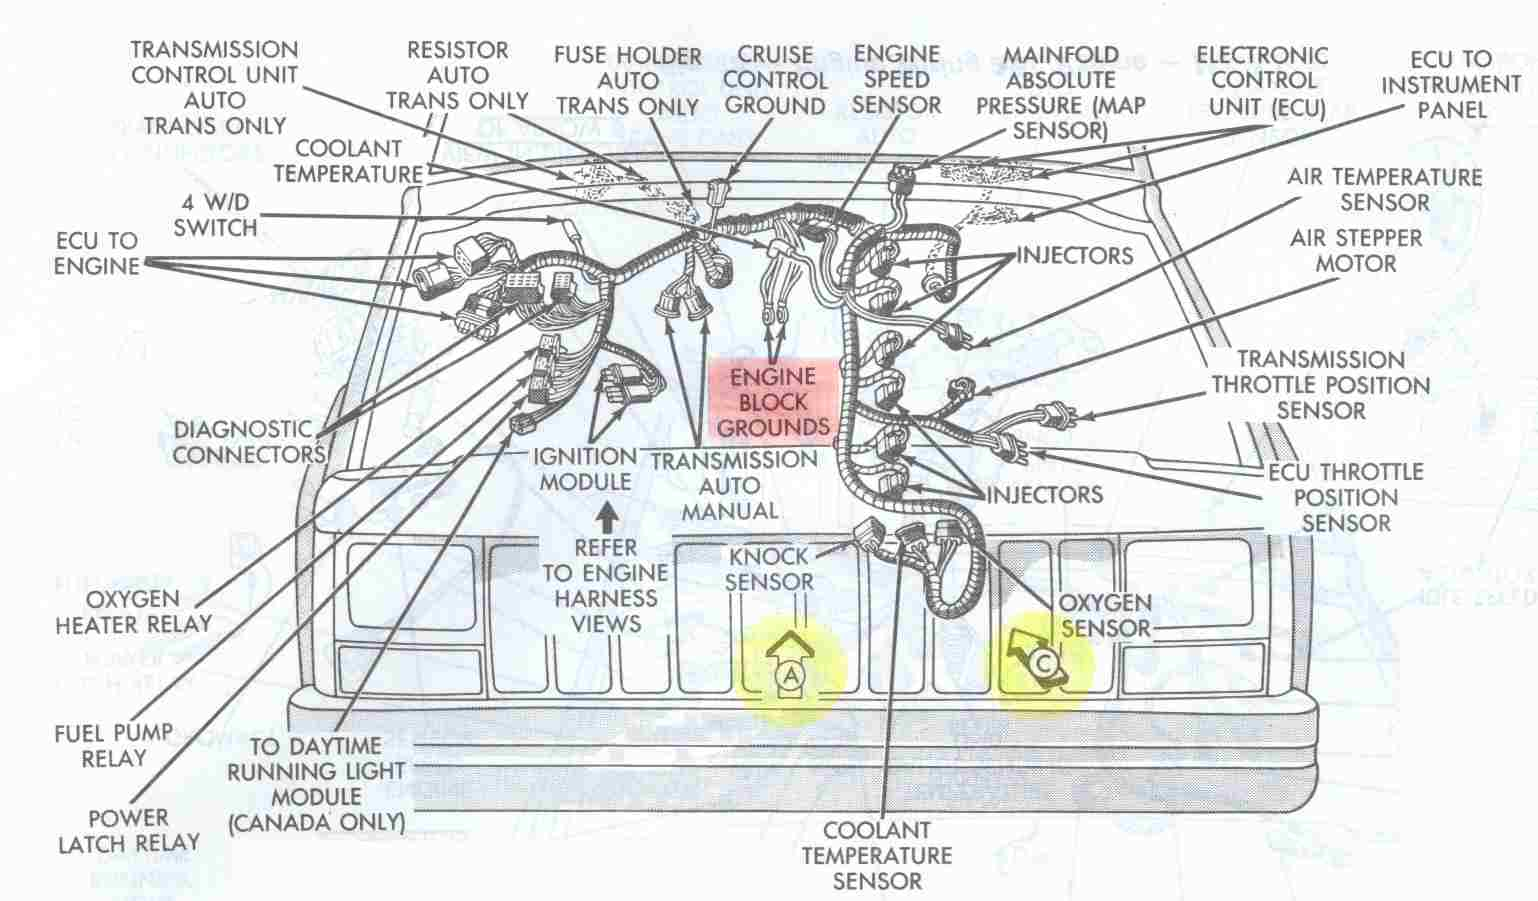 radio wiring diagram for 1999 jeep grand cherokee steam table and mollier pdf xj diagrams schematic library engine online